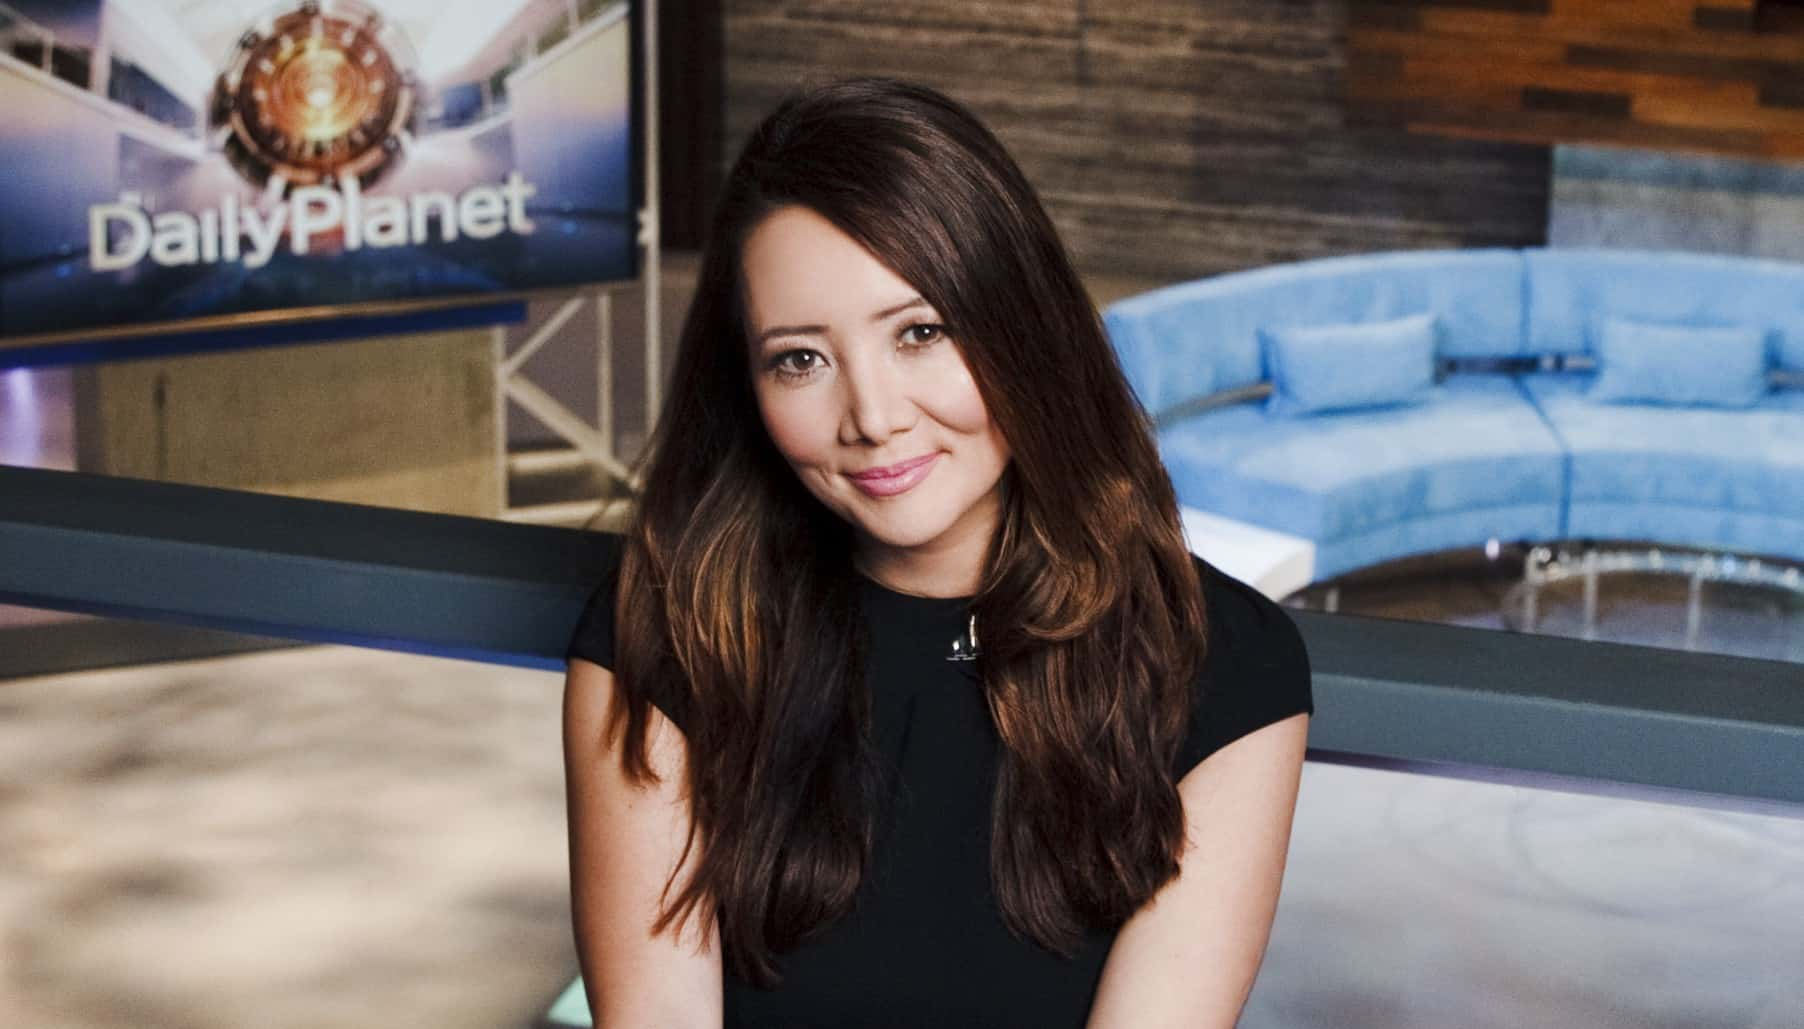 Her Career: Ziya Tong - Daily Planet Co-Host & Pandamonium Co-Chair